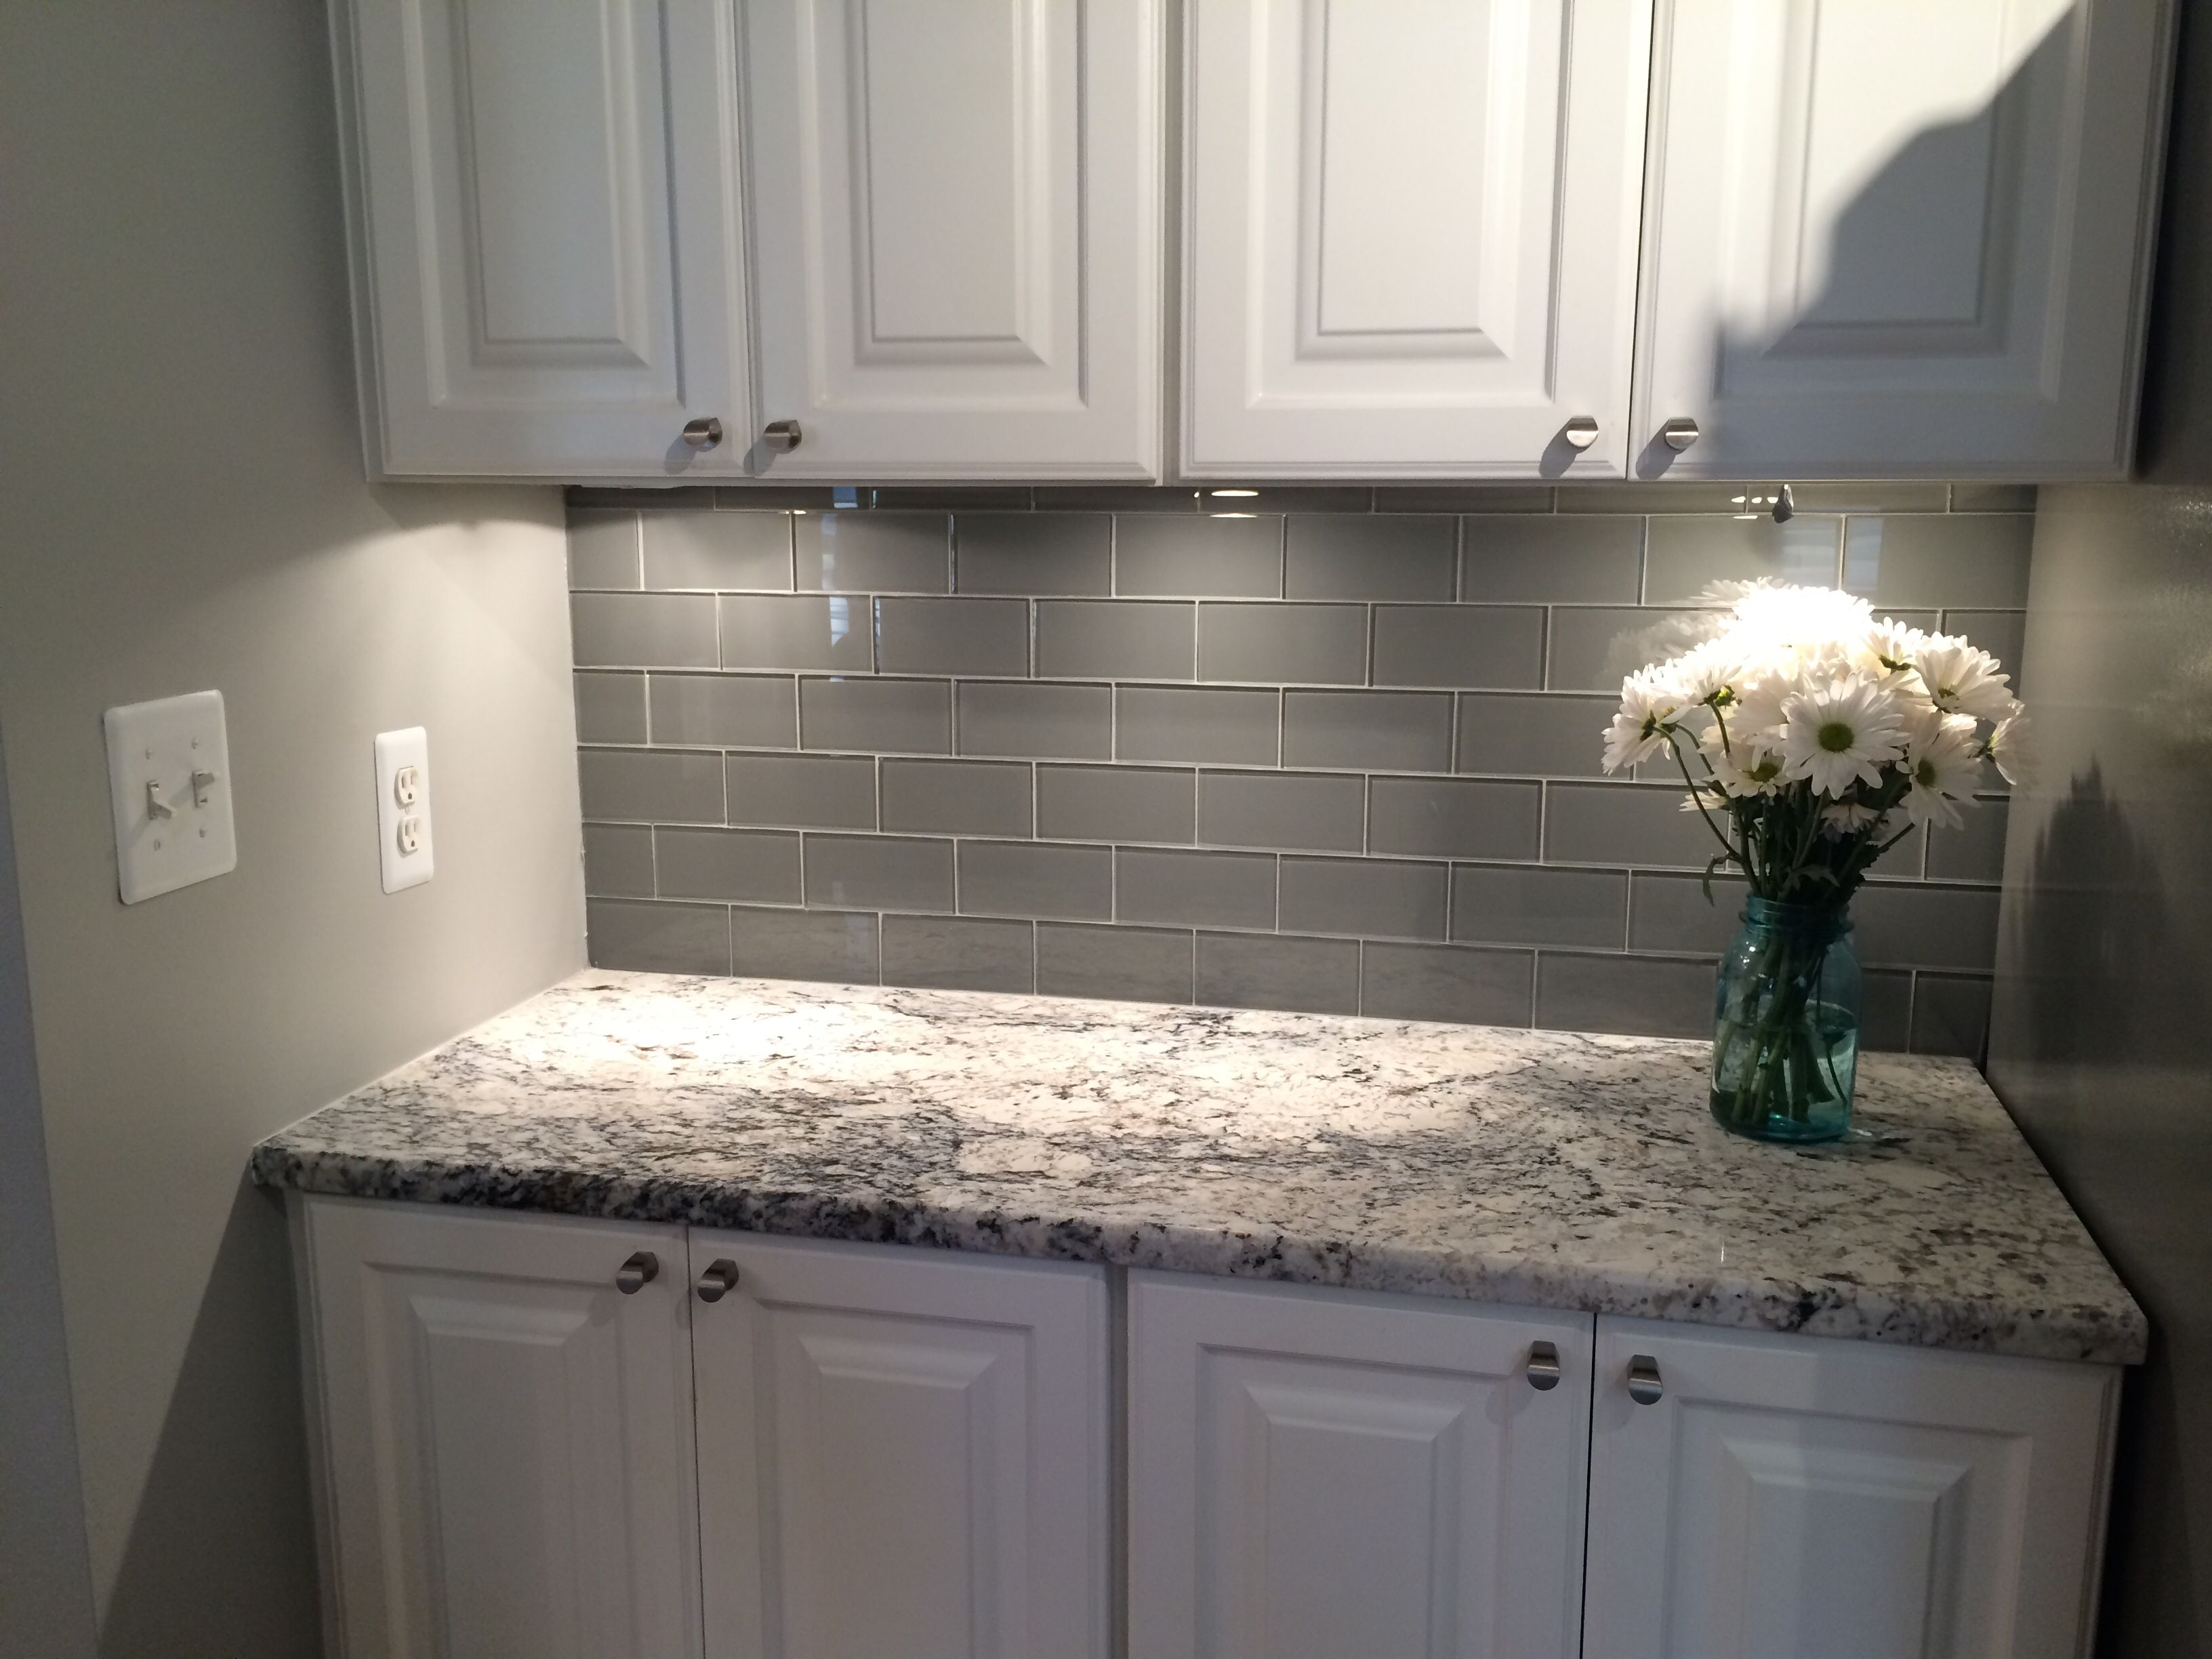 Grouting Kitchen Backsplash Property Brilliant Grey Glass Subway Tile Backsplash And White Cabinet For Small . Review